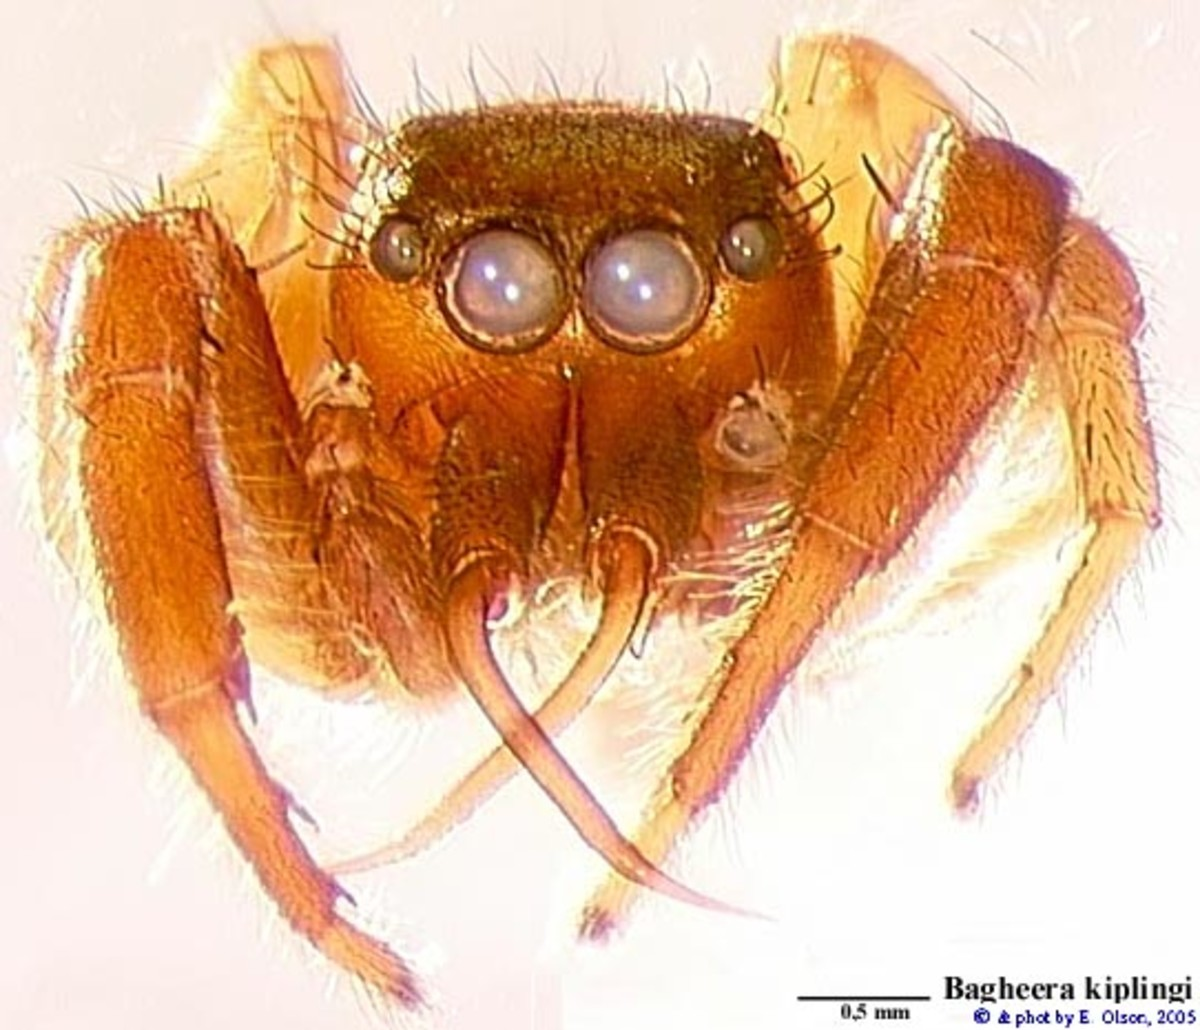 The Bagheera - Source - http://salticidae.org/salticid/diagnost/bagheer/kip-olph.htm